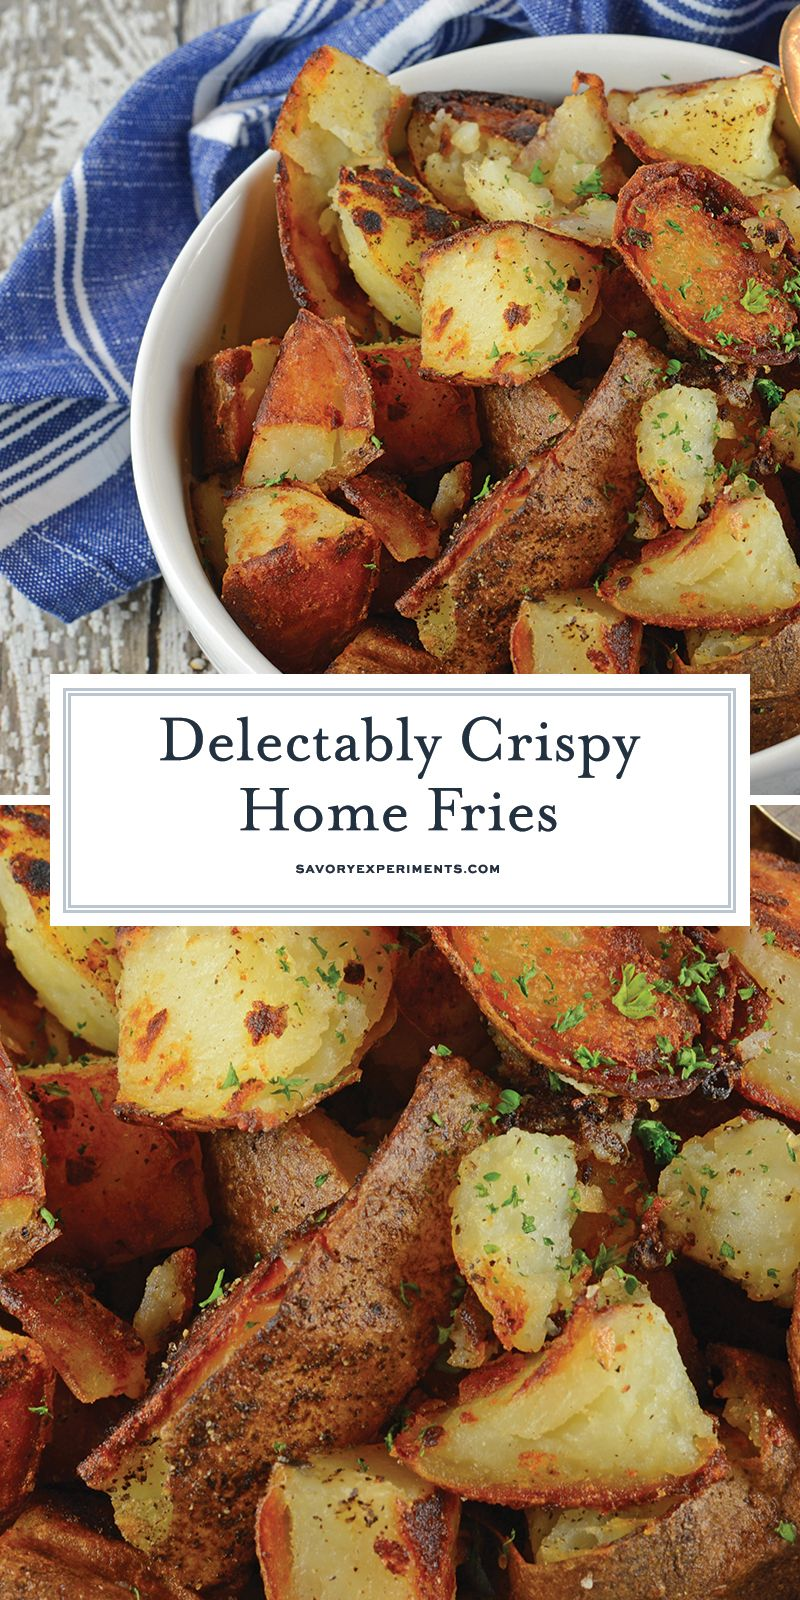 Make Crispy Home Fries Like At The Restaurant Right At Home My